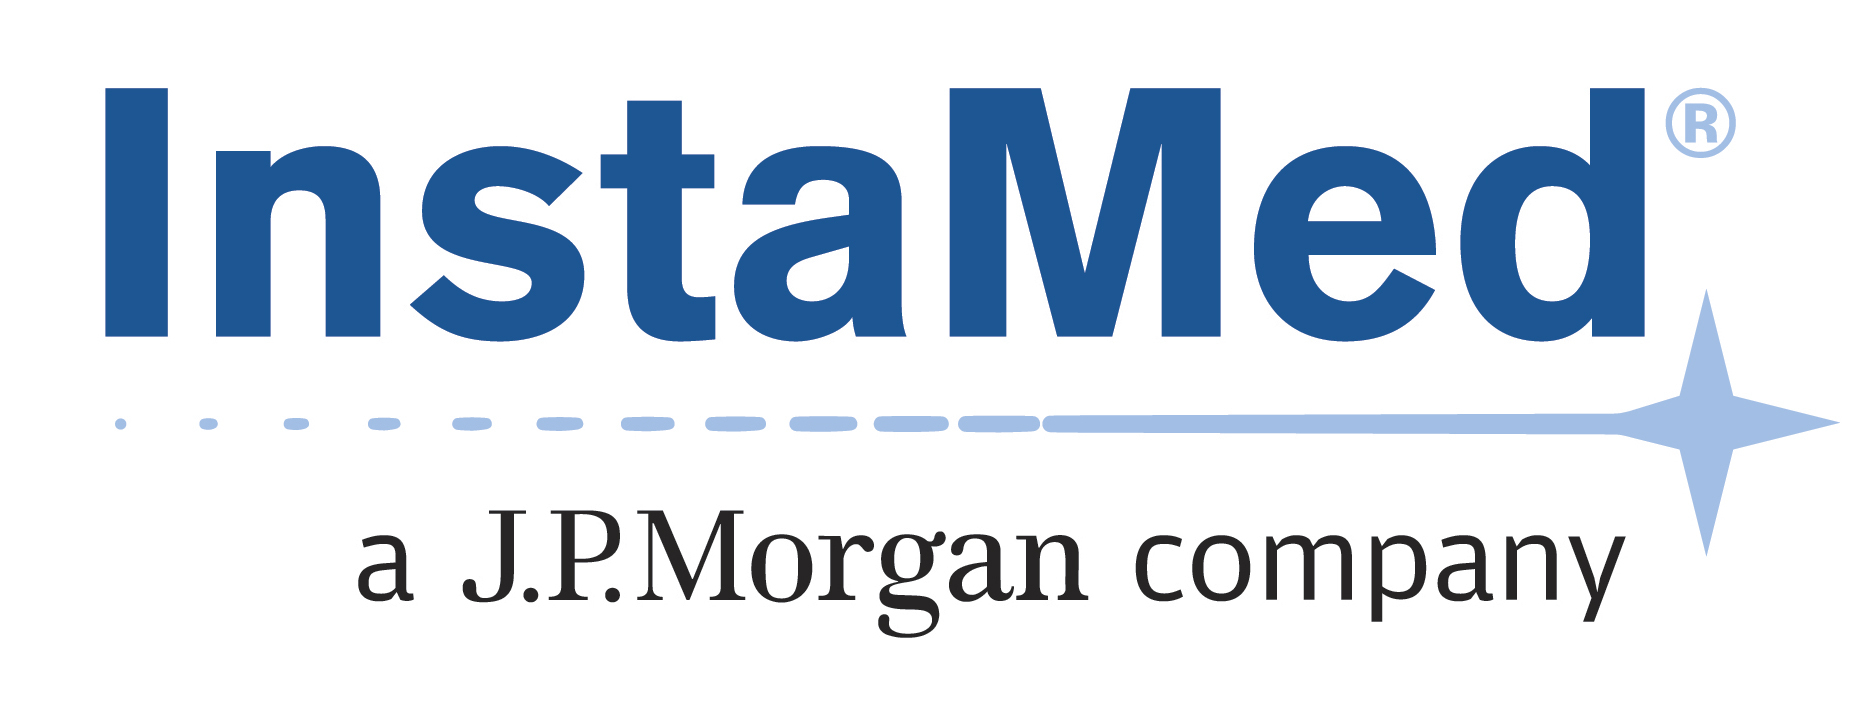 JPMorgan Chase Closes InstaMed Acquisition | Business Wire